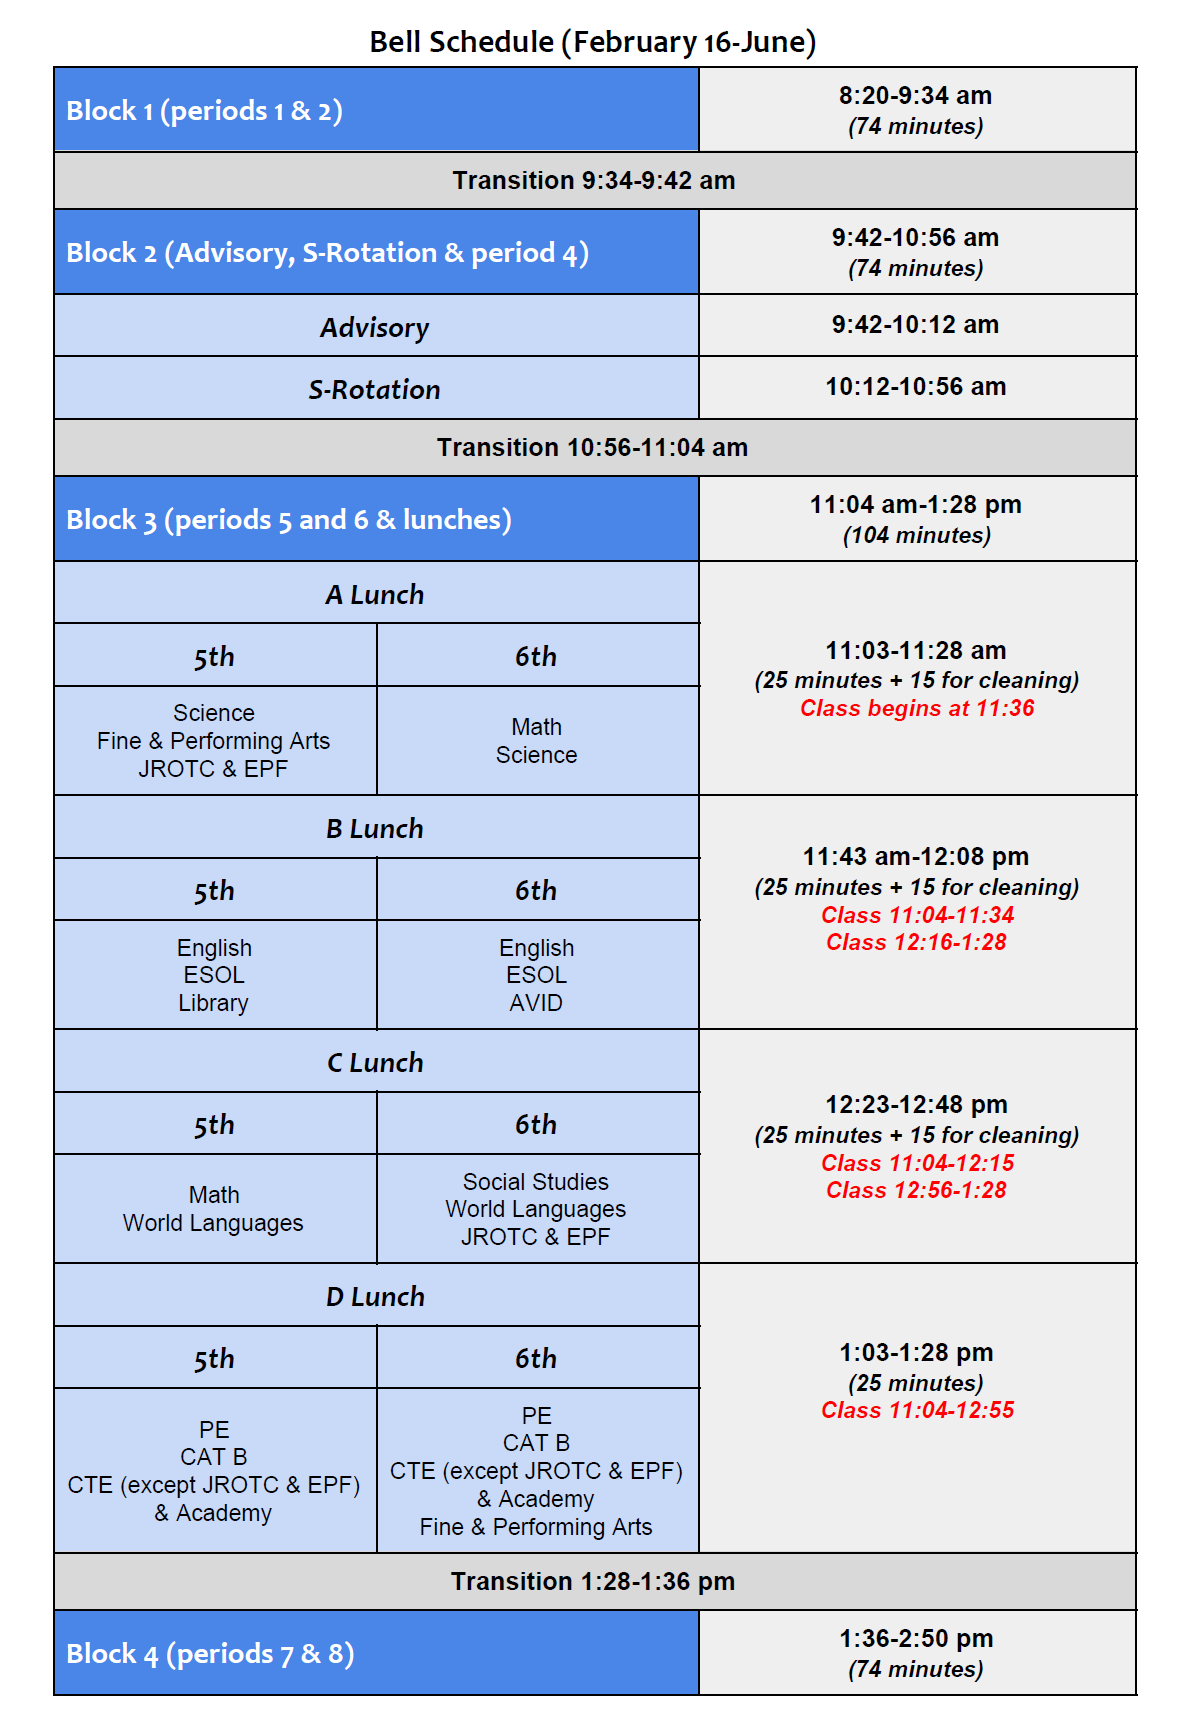 Bell Schedule from February 16 to  June